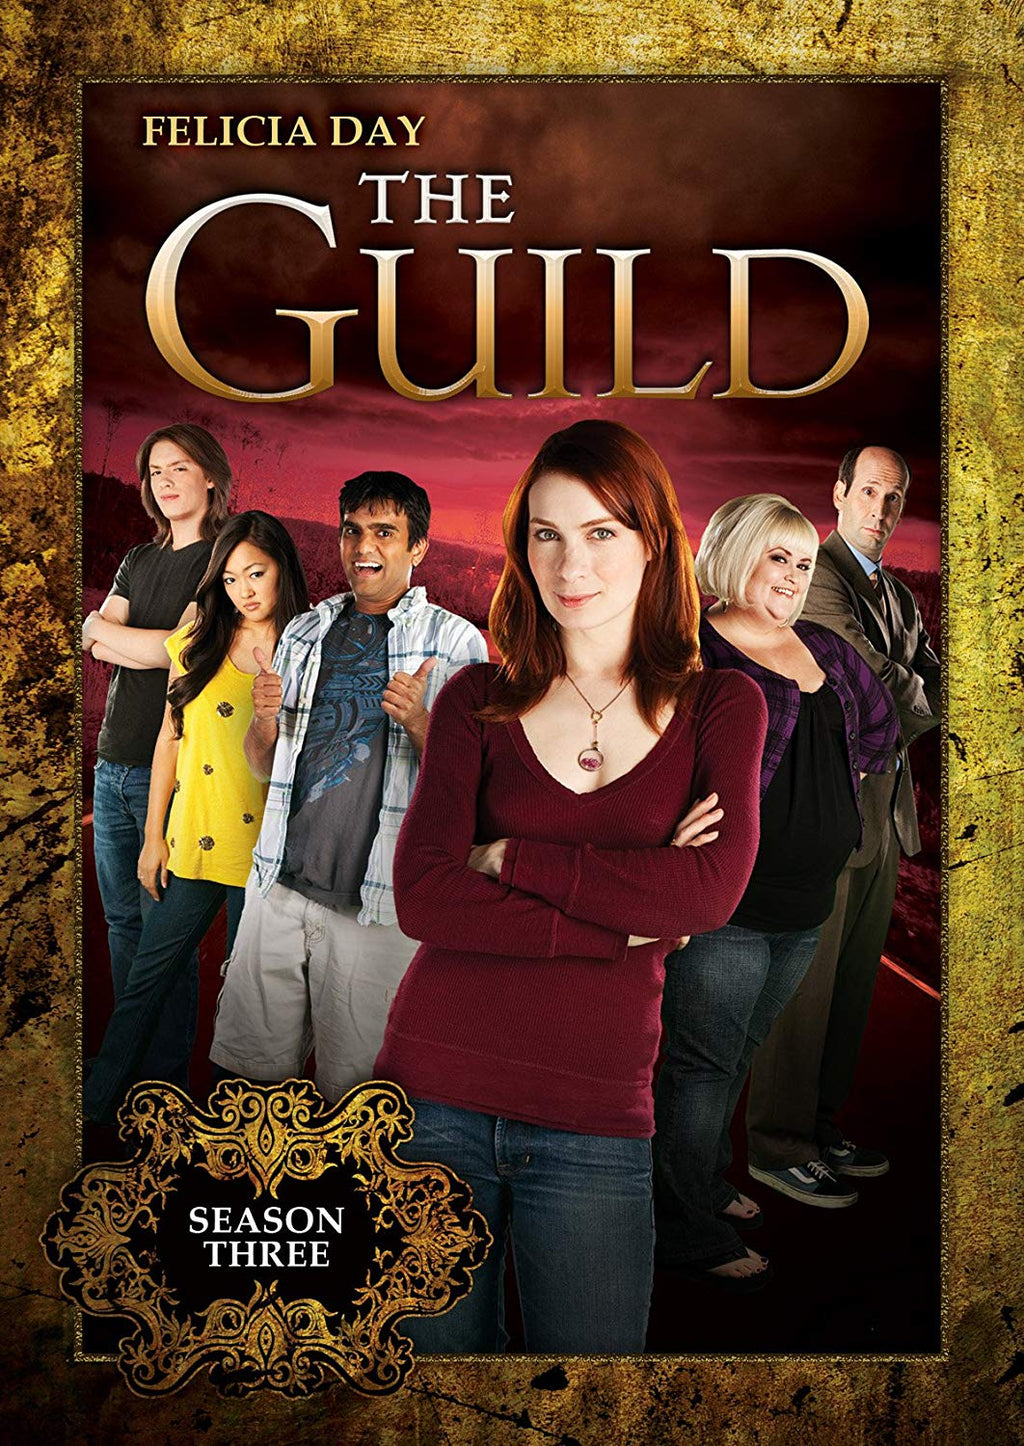 The Guild: Season 3 DVD